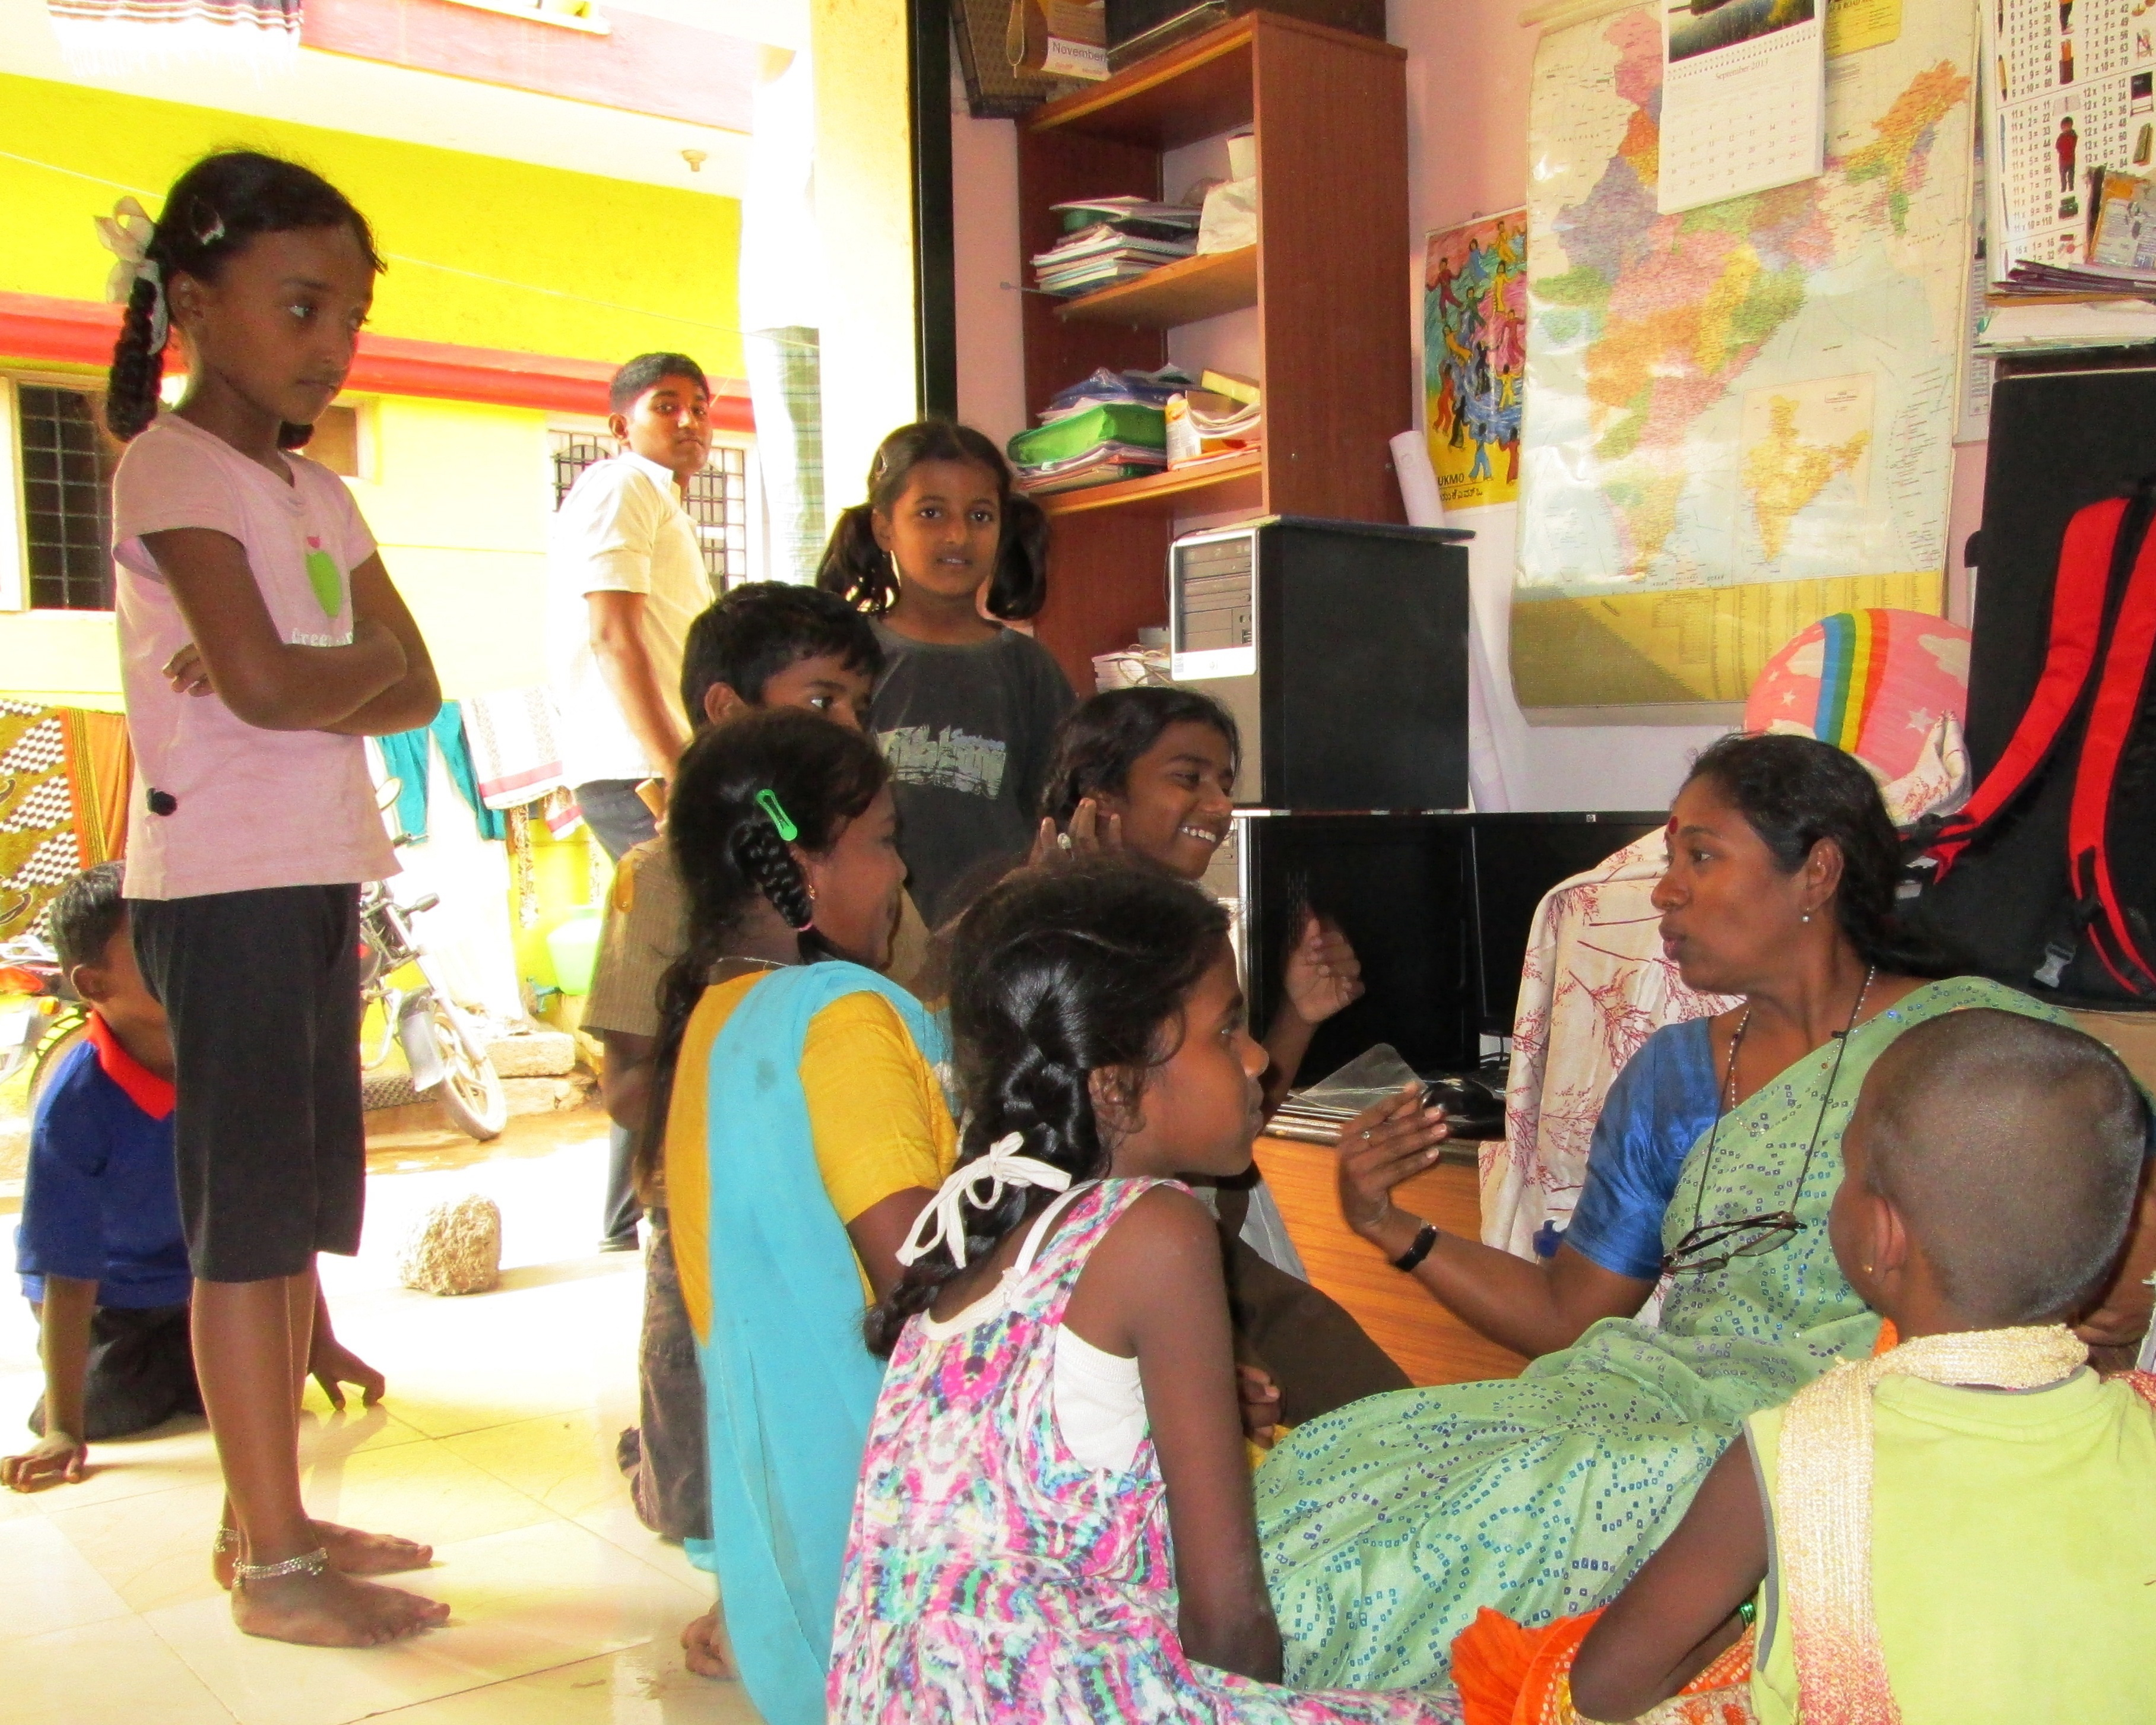 3.	These girls come to the GCI office in the slum every day and participate in the Children's Creativity programme